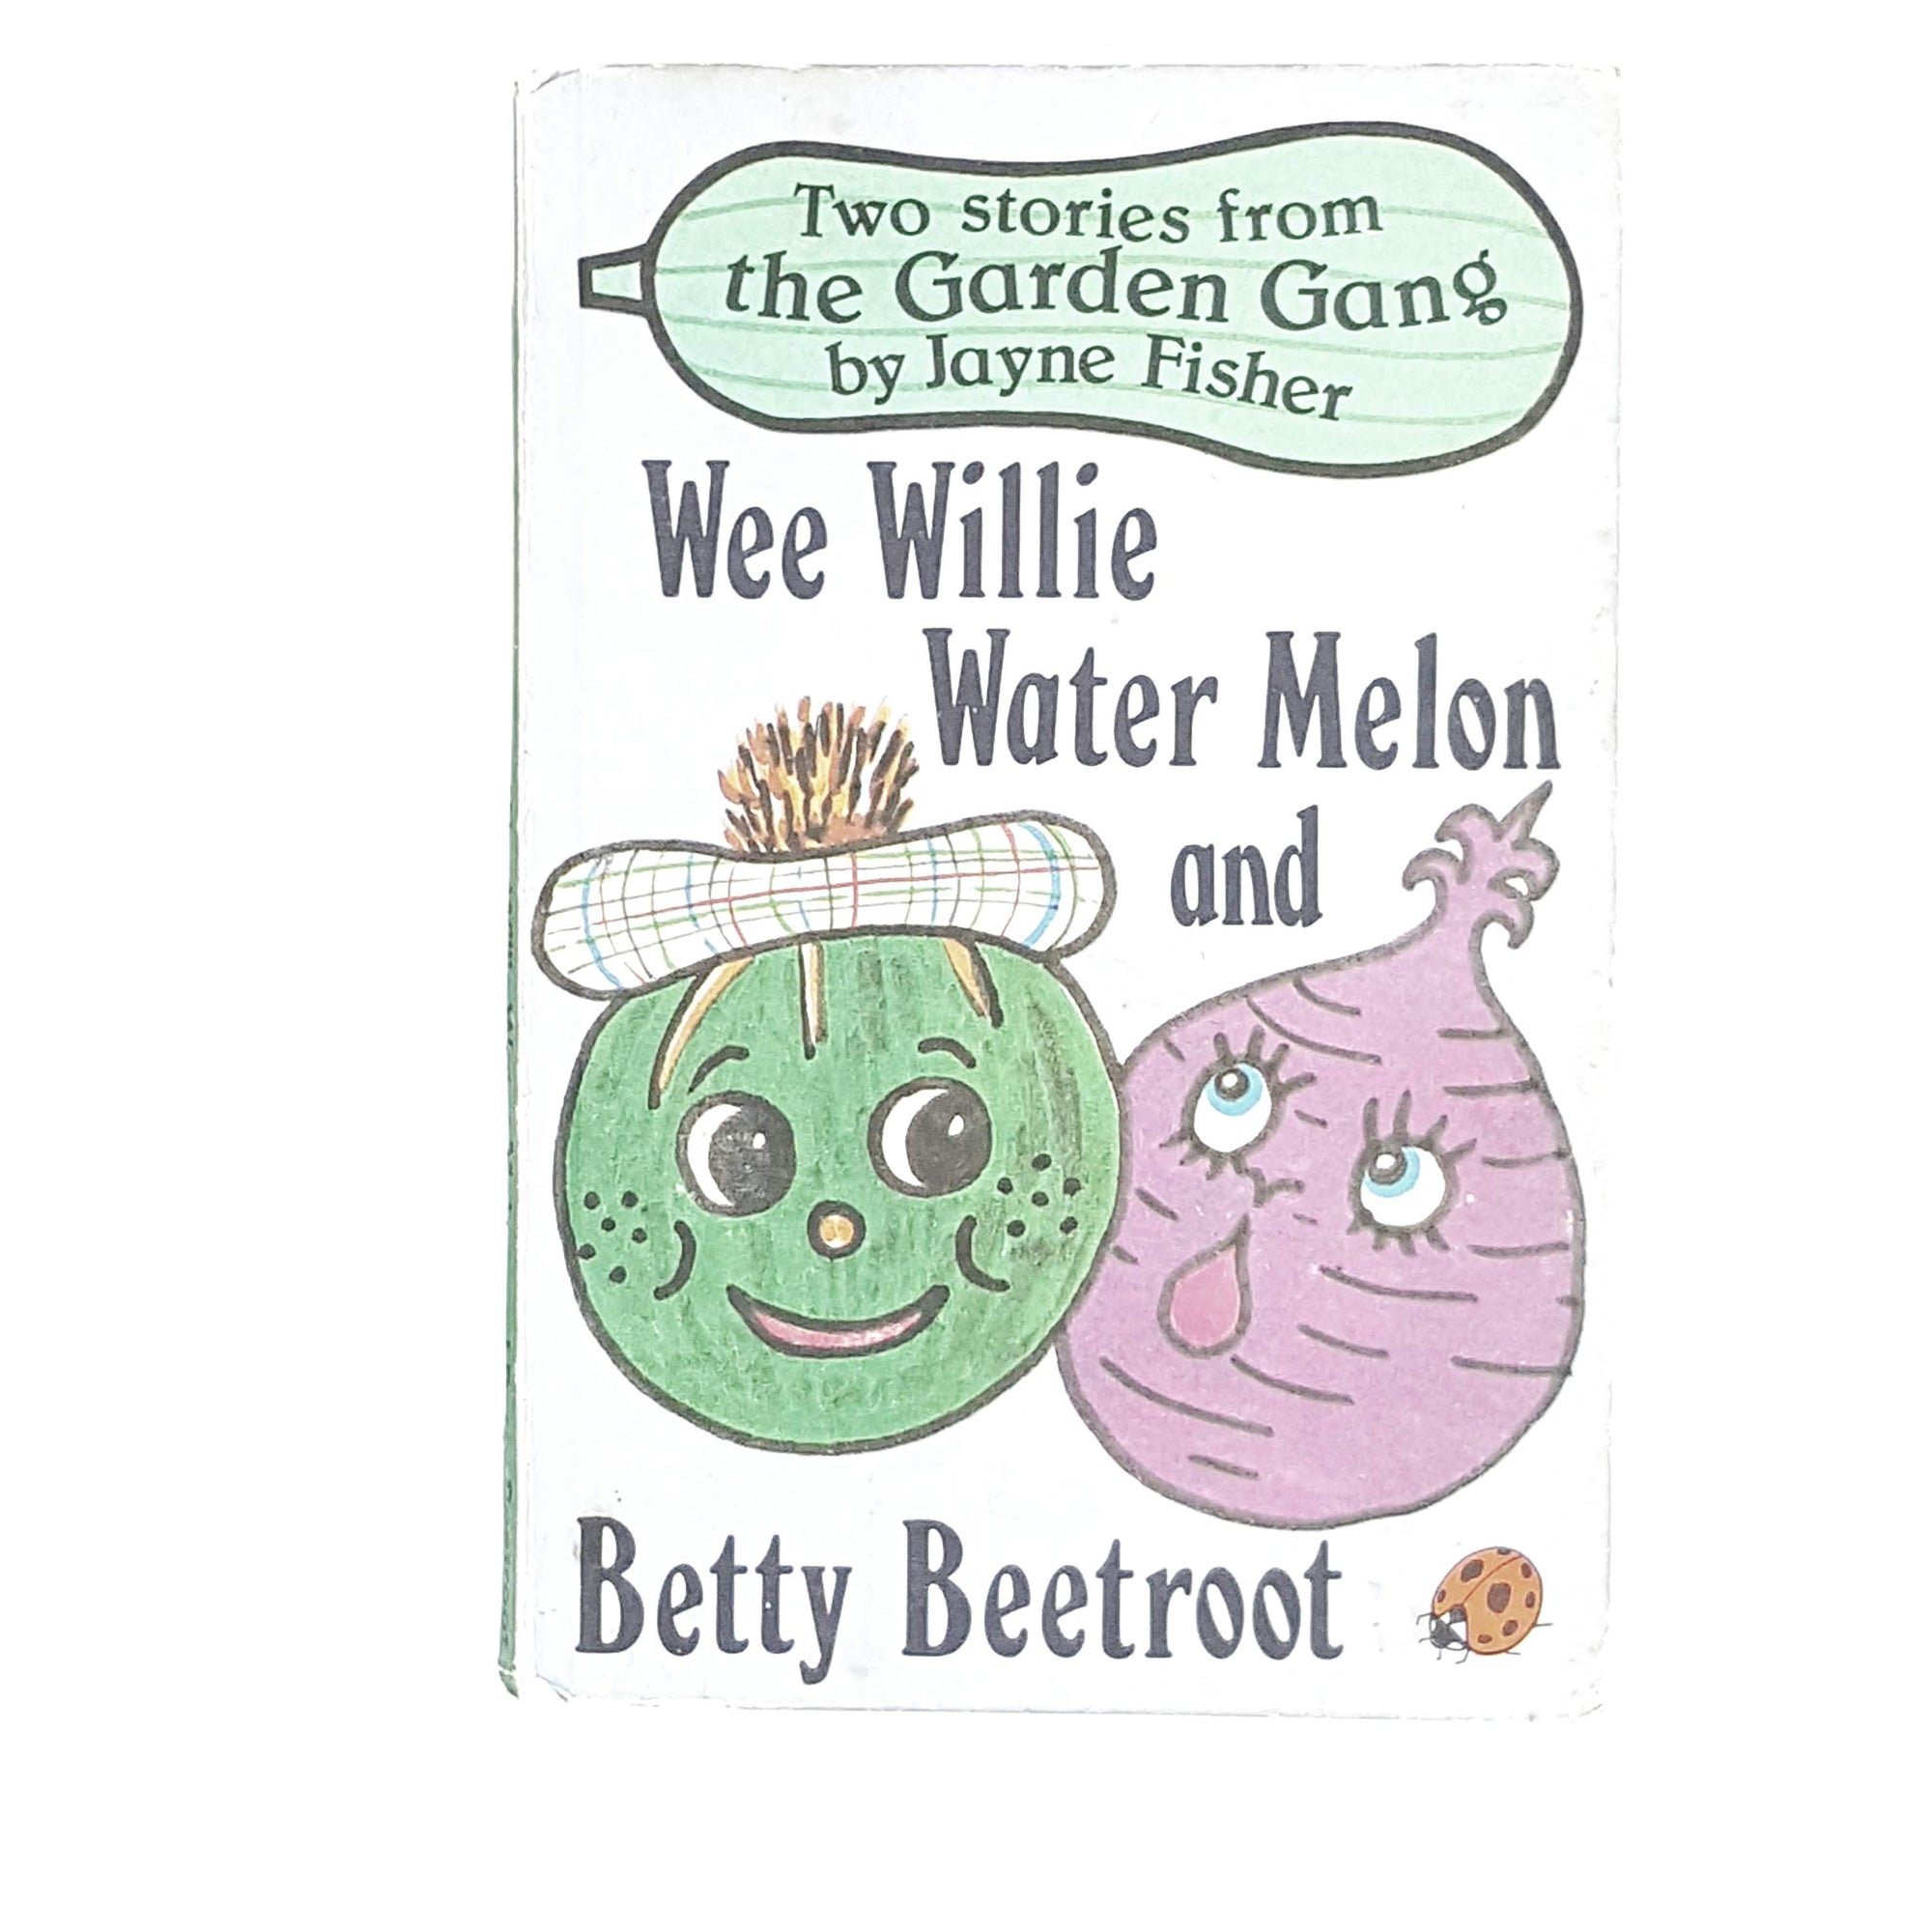 ladybird-garden-gang-wee-willie-water-melon-and-betty-beetroot-by-jayne-fisher-1979-kindergarten-books-country-house-library